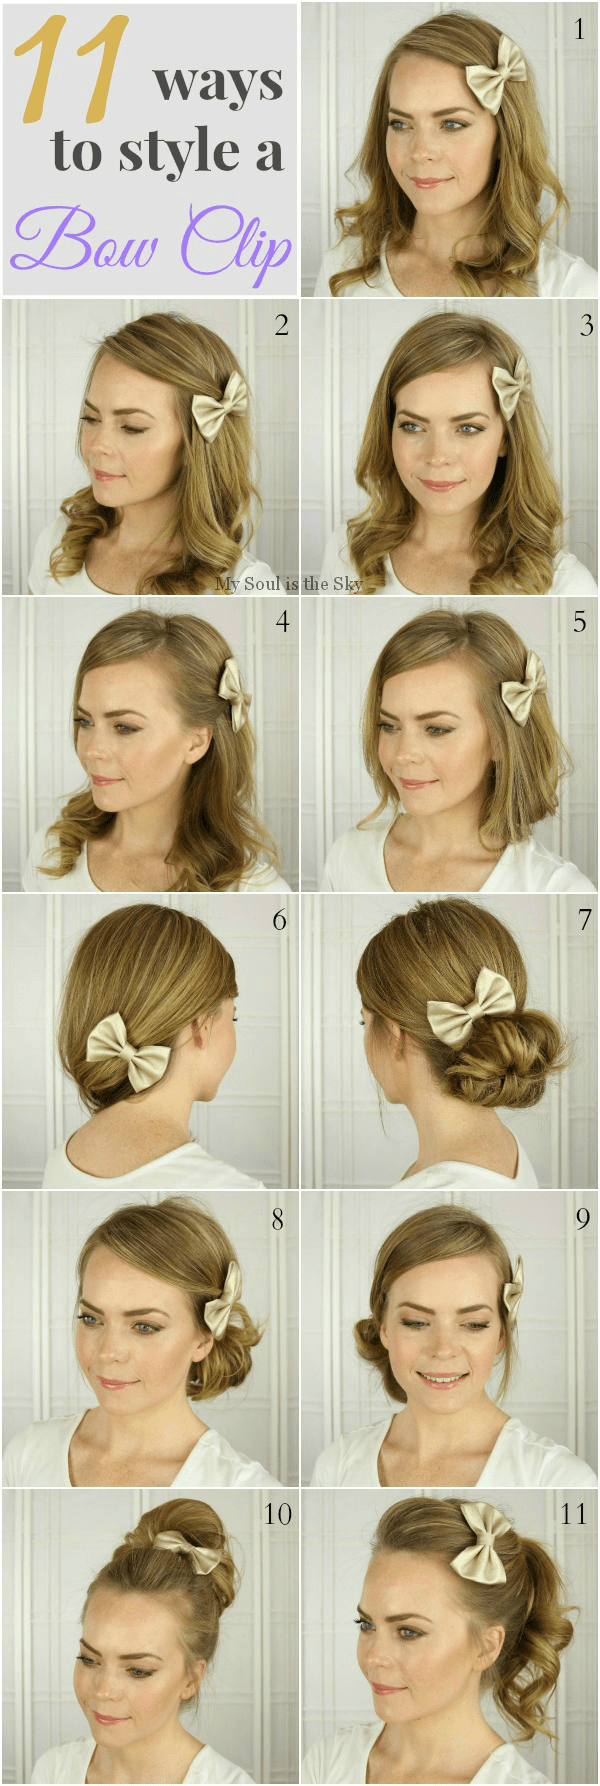 hairstyles-with-a-bow